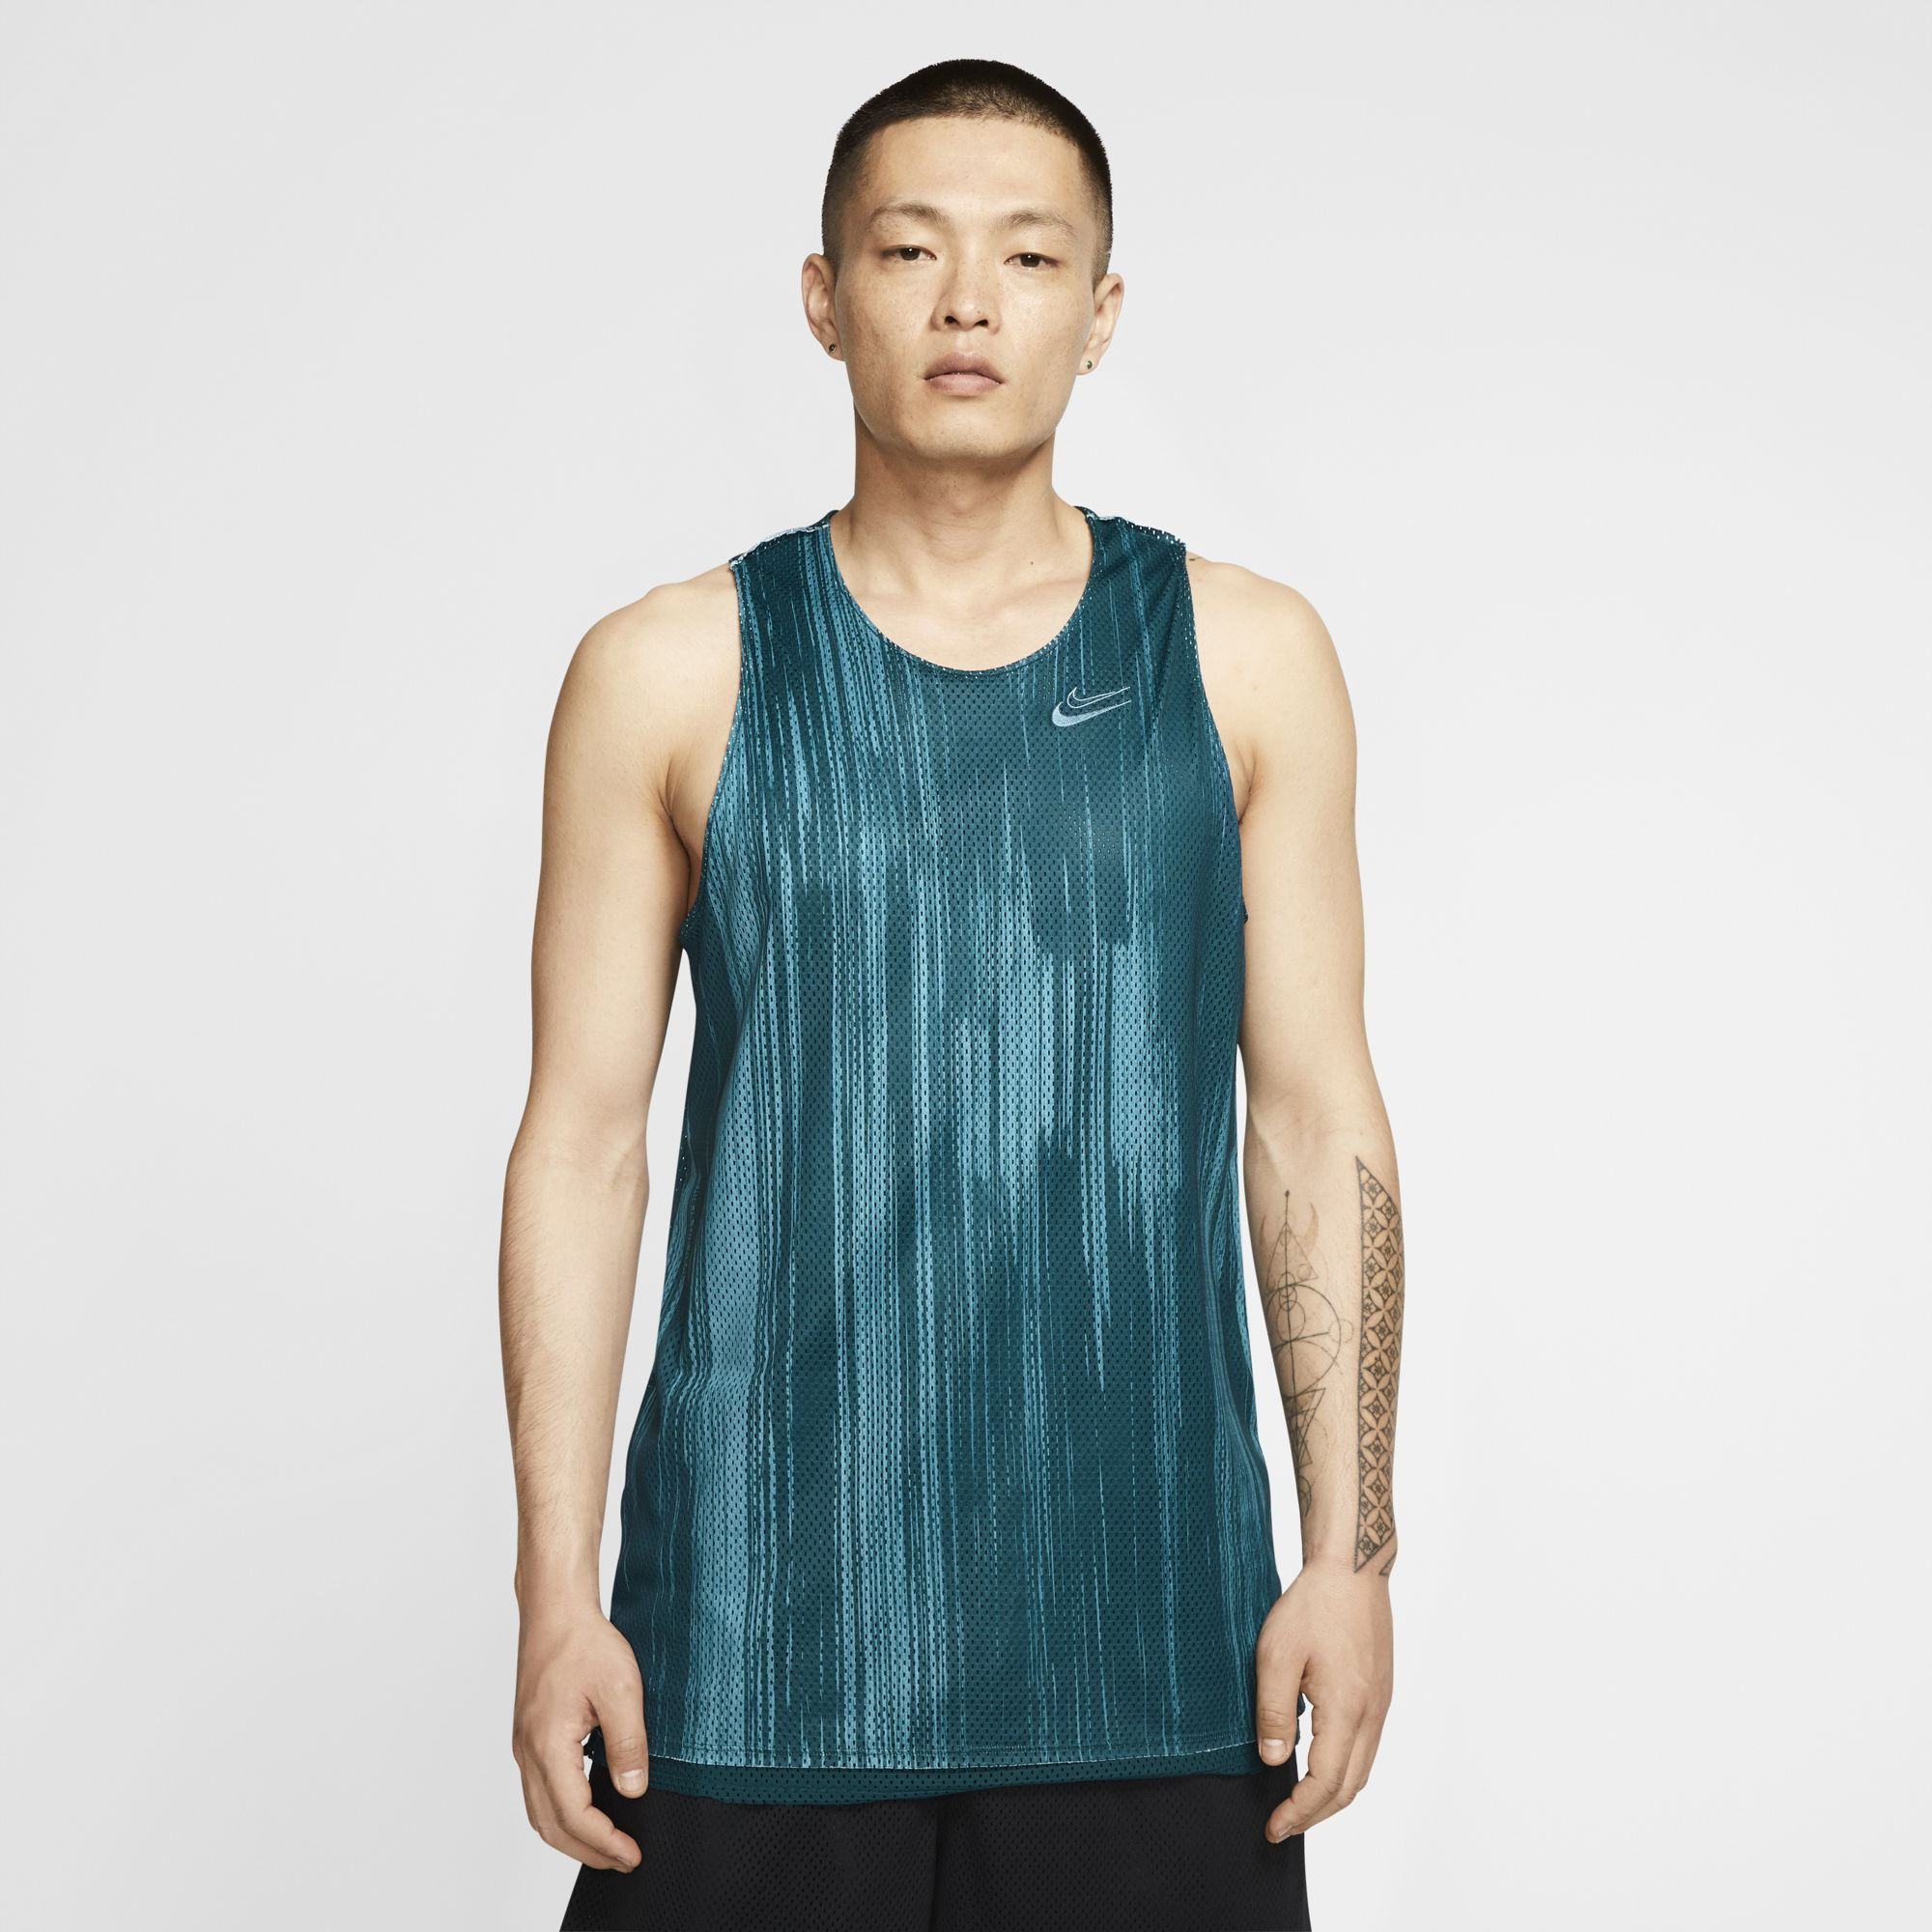 Nike KD Dri-fit Reversible Basketball Jersey - Midnight Turquoise/Cerulean